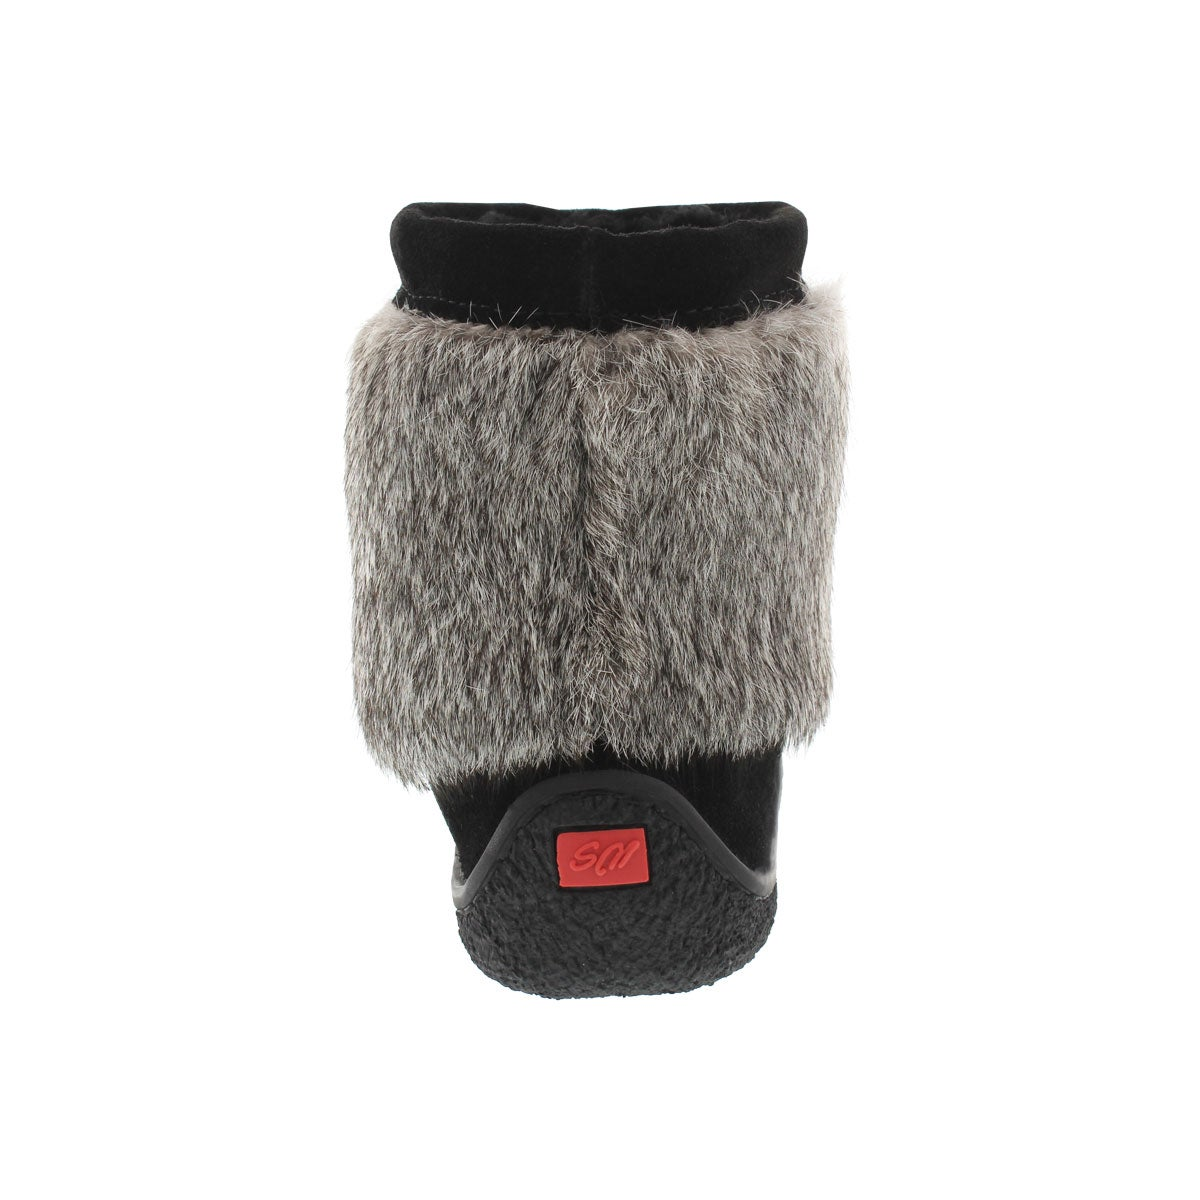 Lds Minimuk black rabbit fur bootie